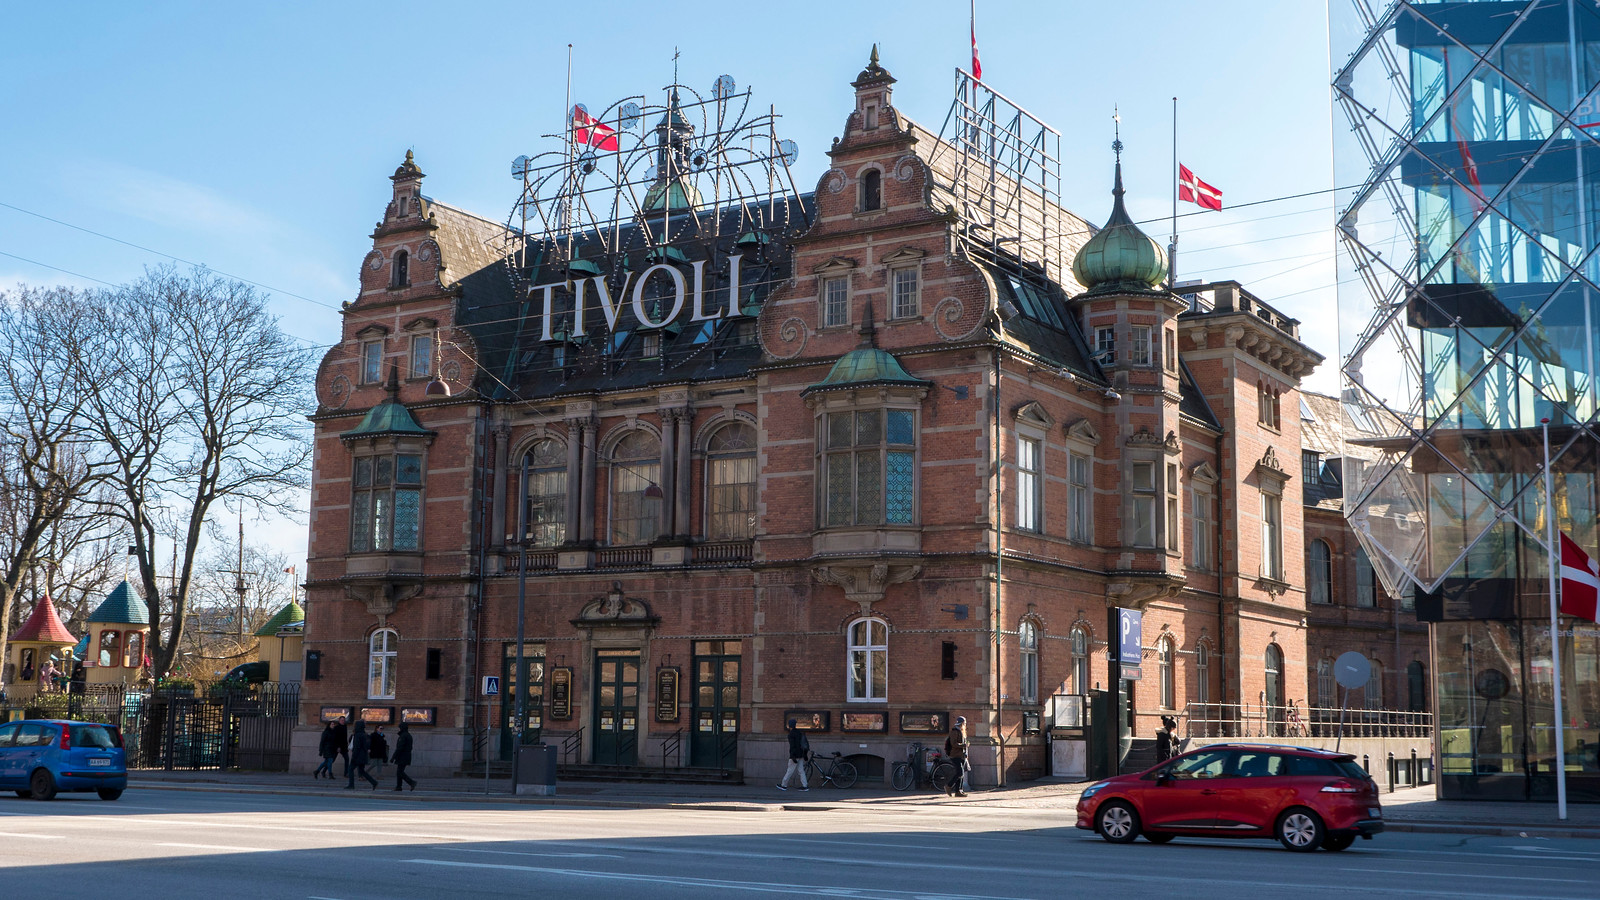 Tivoli Denmark Shop 3 Days In Copenhagen Itinerary The Ultimate Travel Guide For